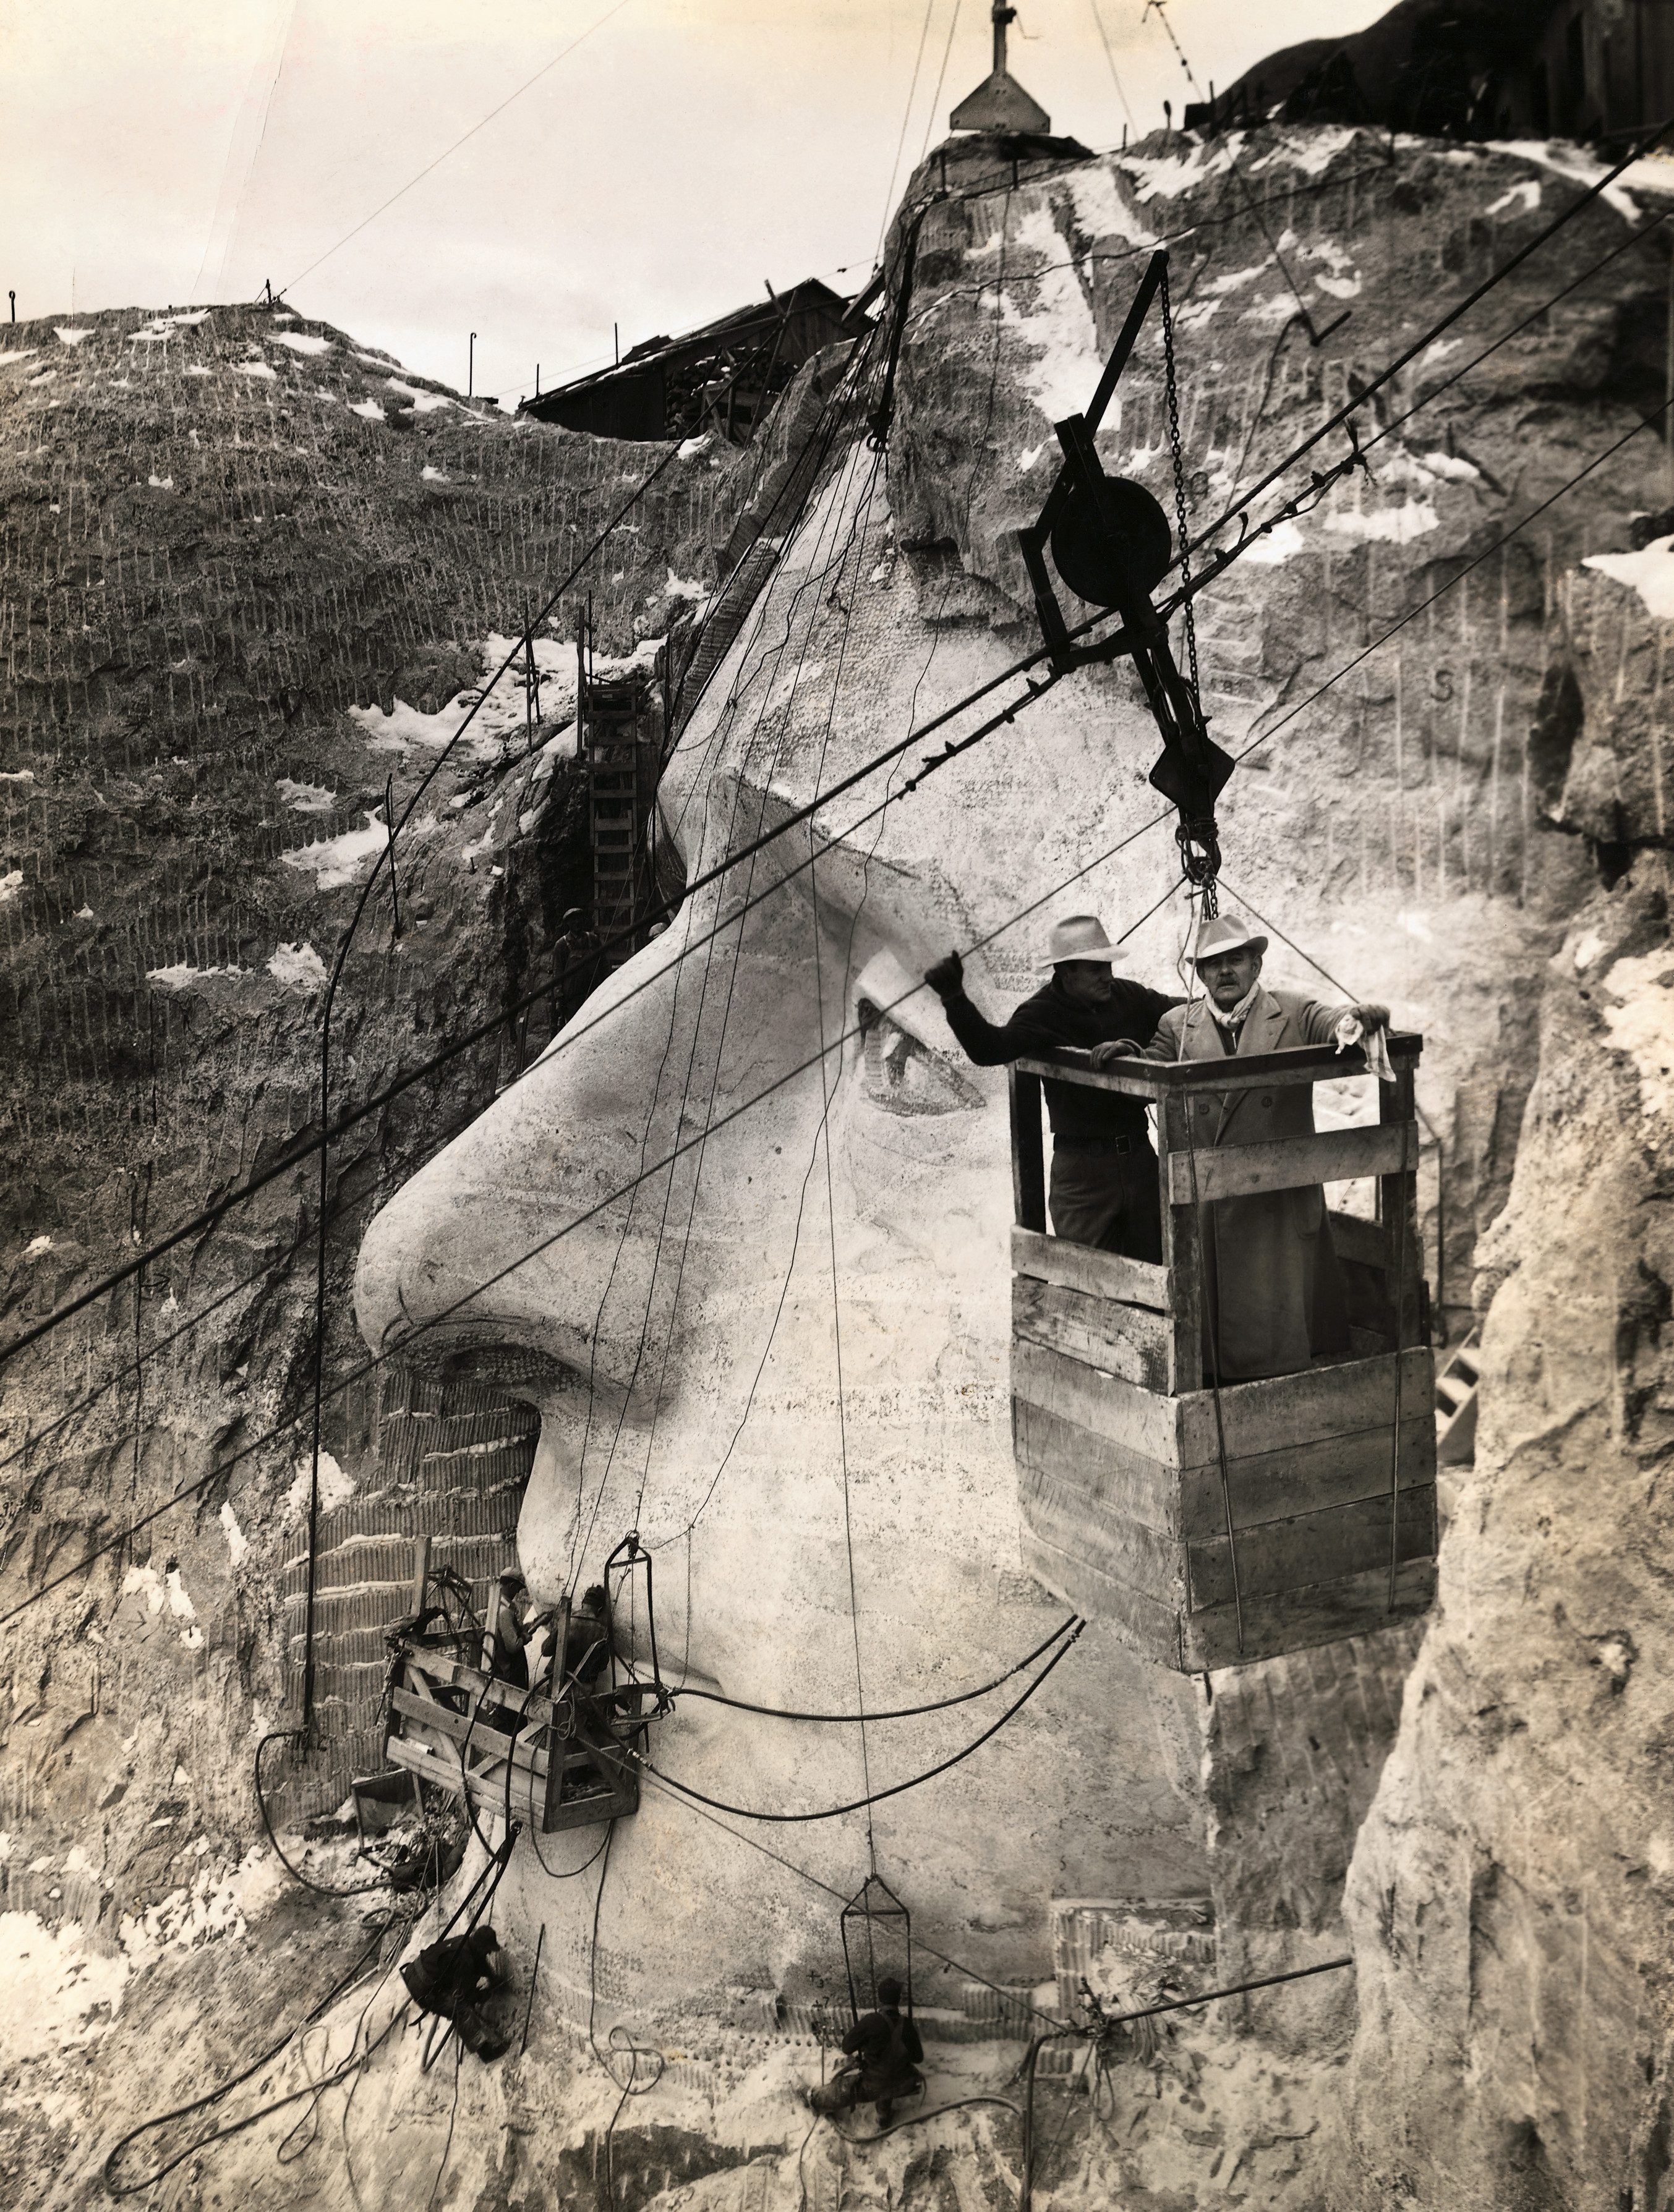 American sculptor Gutzon Borglum and his son, Lincoln, inspect the Jefferson head from an aerial tram in the Black Hills area of Keystone, S.D. on Nov. 23, 1935.